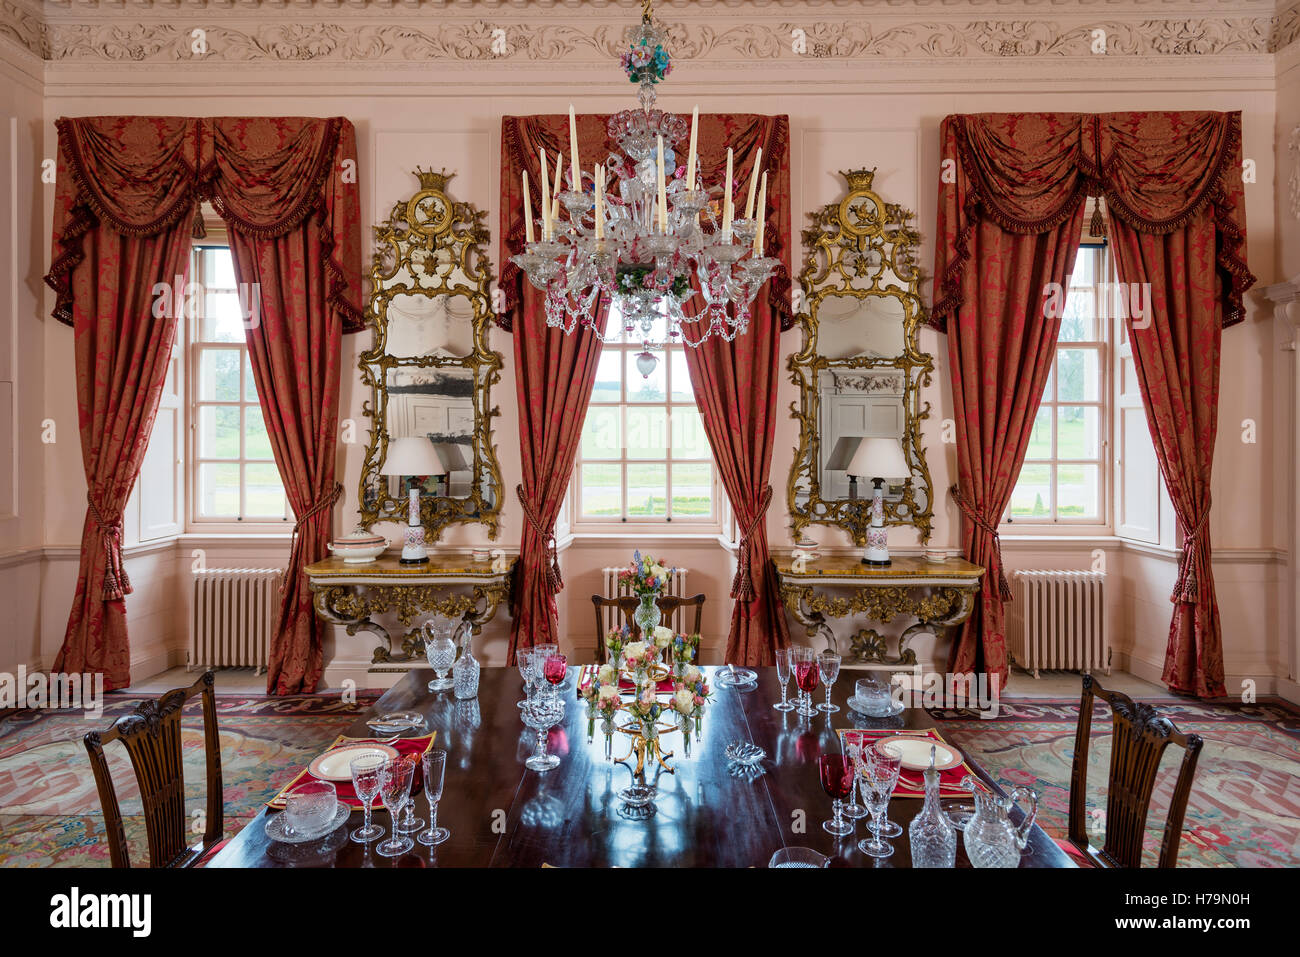 Murano Glass Chandelier In Dining Room Of 18th Century Dumfries House Ayrshire Scotland